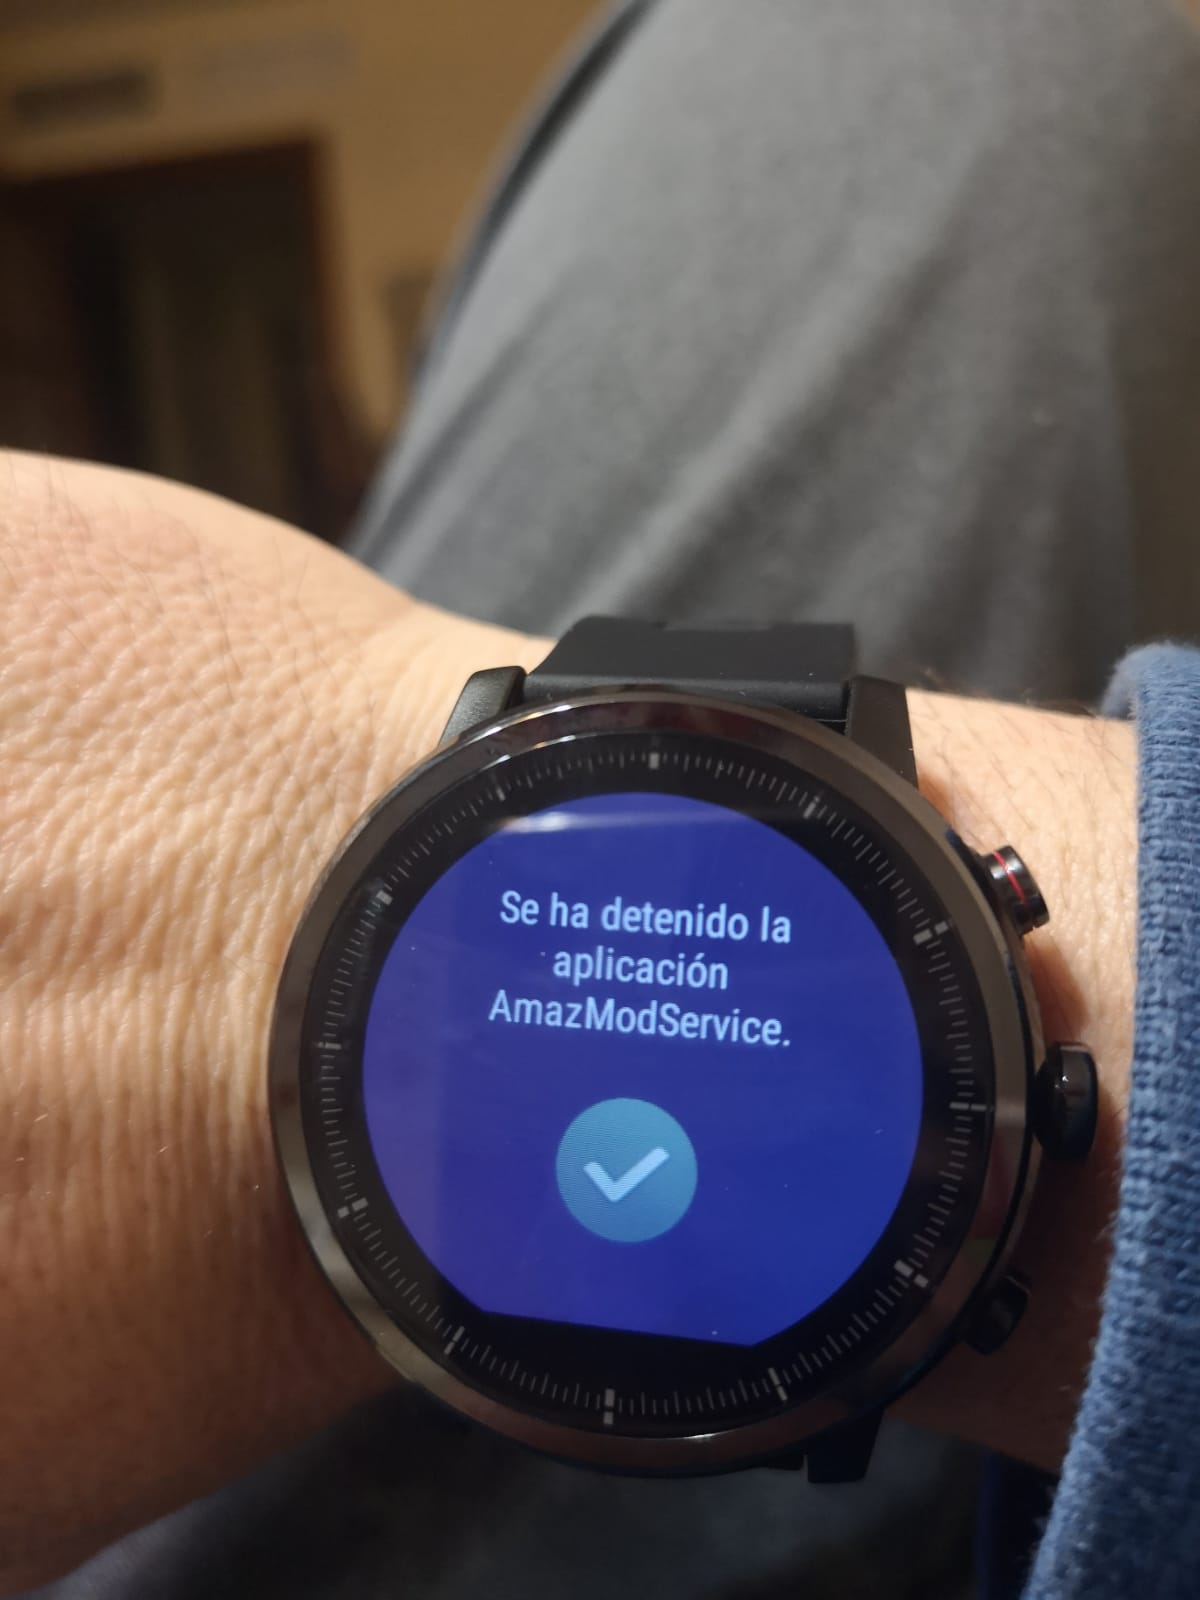 Message in watch AmadModService Stopped · Issue #423